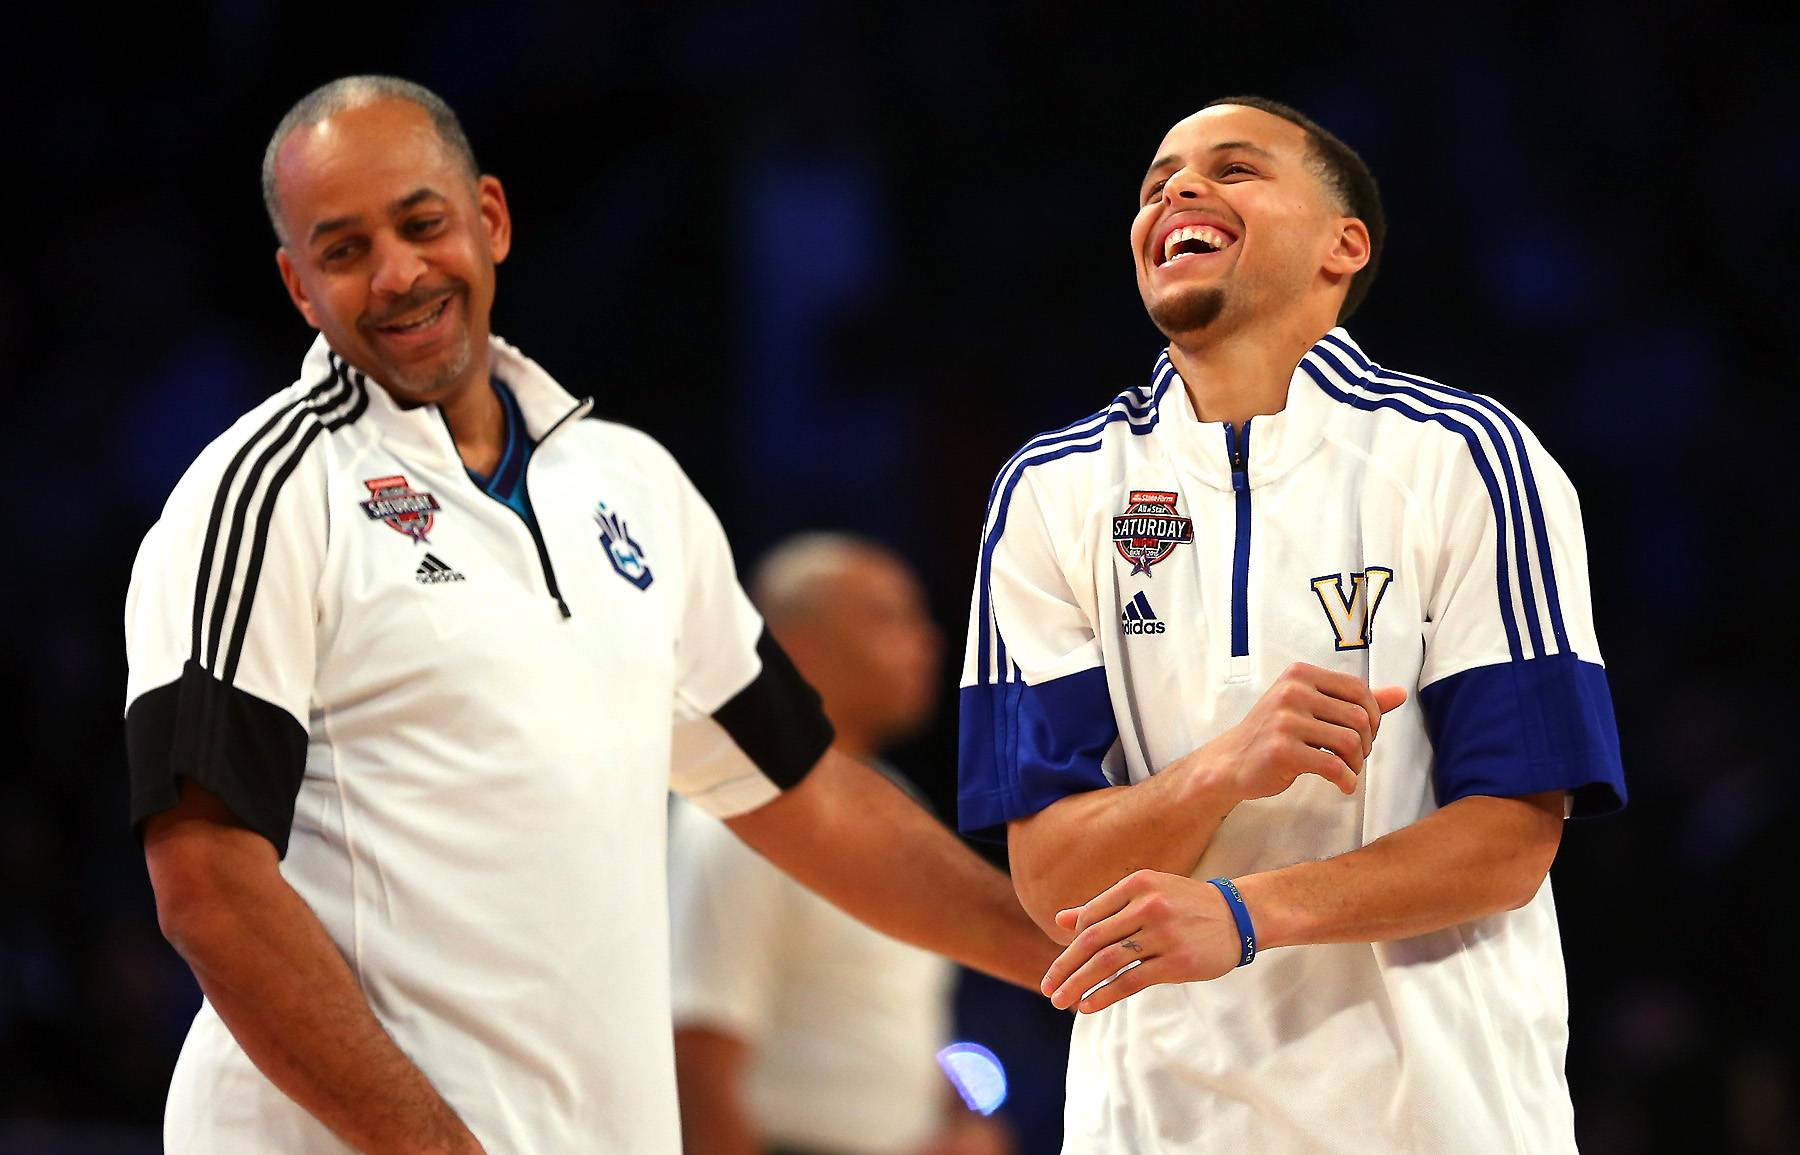 Curry With the Shot  - These two NBA stars have more in common than just kinship. Stephen Curry, No. 30 of the Golden State Warriors, and his father NBA Legend Dell Curry are both basketball stars. (Photo: Elsa/Getty Images)